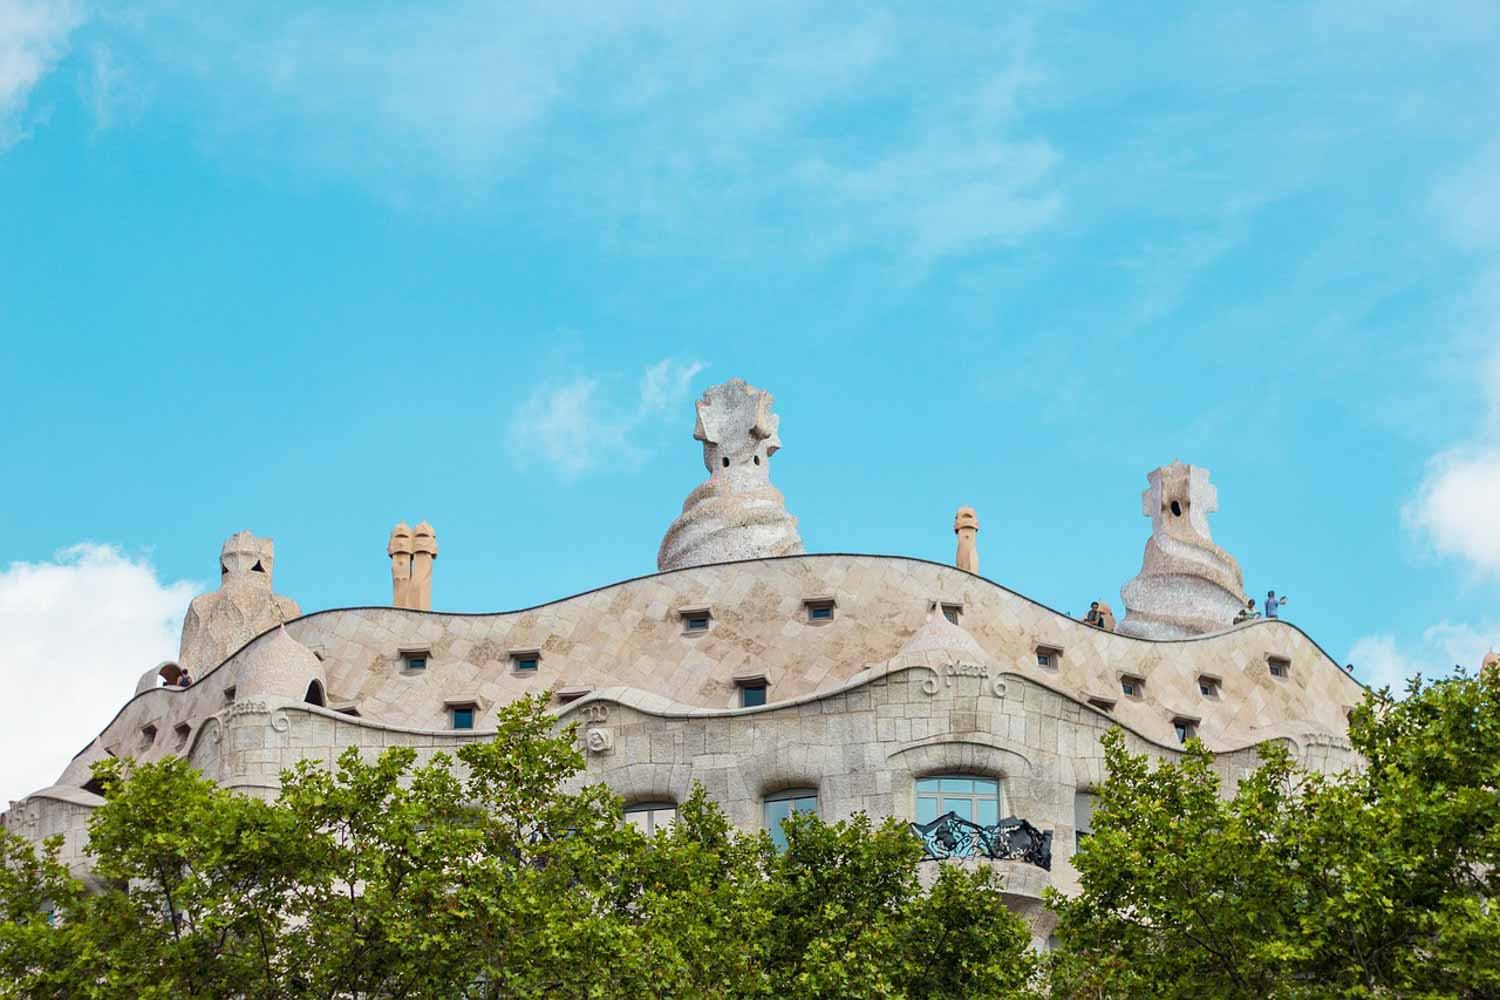 You can tell a Gaudi building just from looking at the roof.